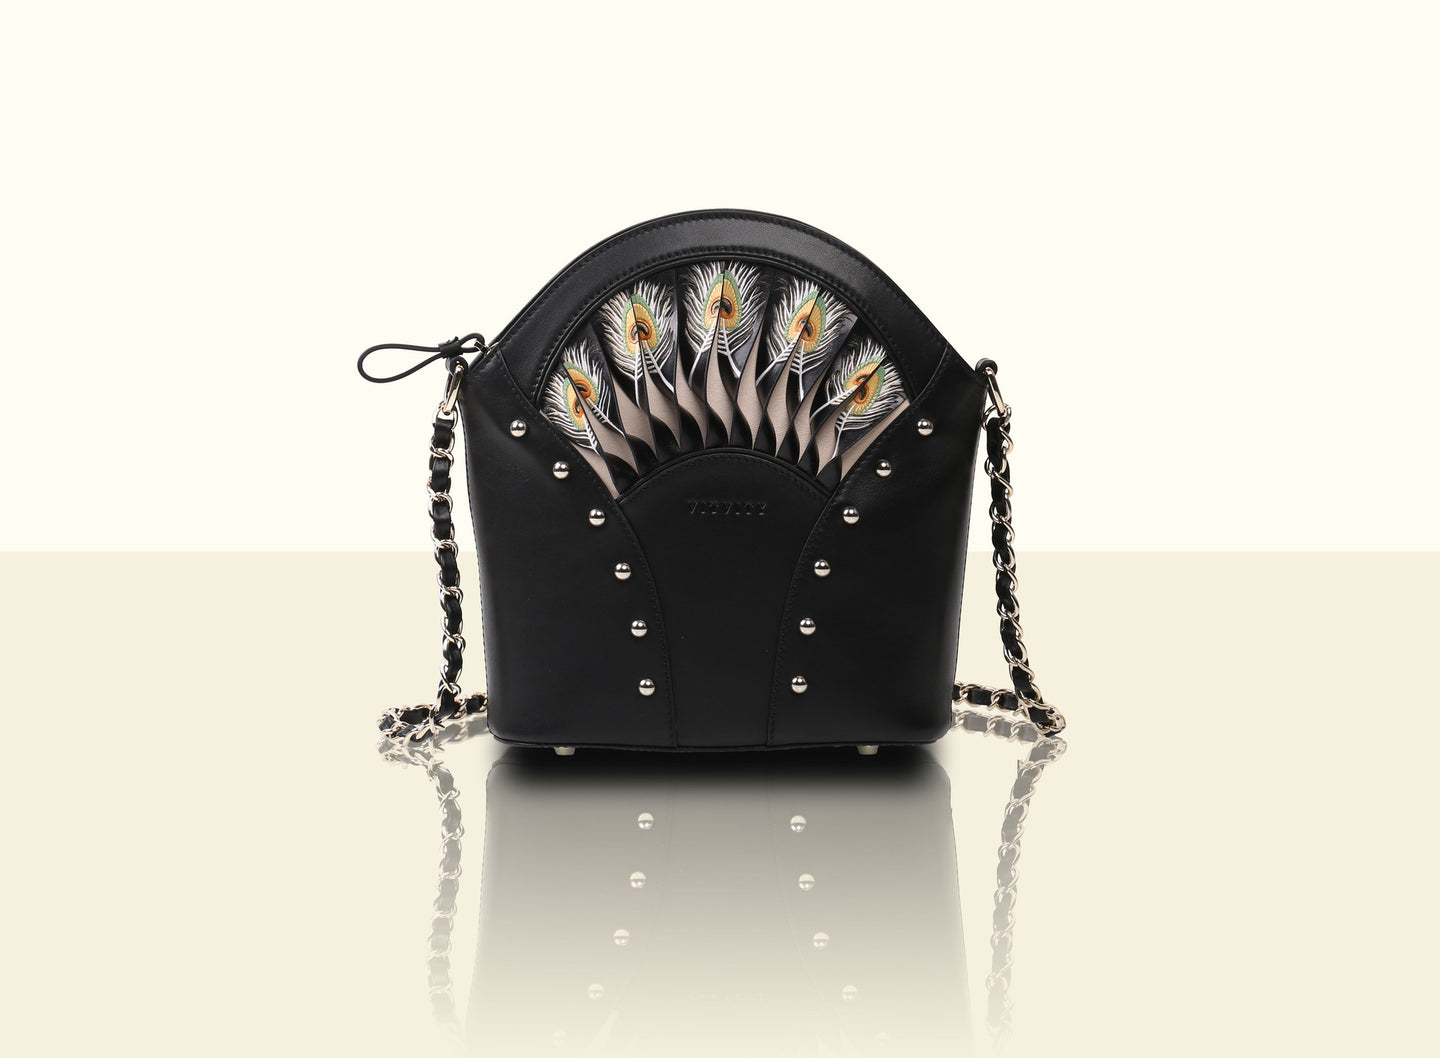 Preorder - Exquisite Fan Crossbody (Small) - Black